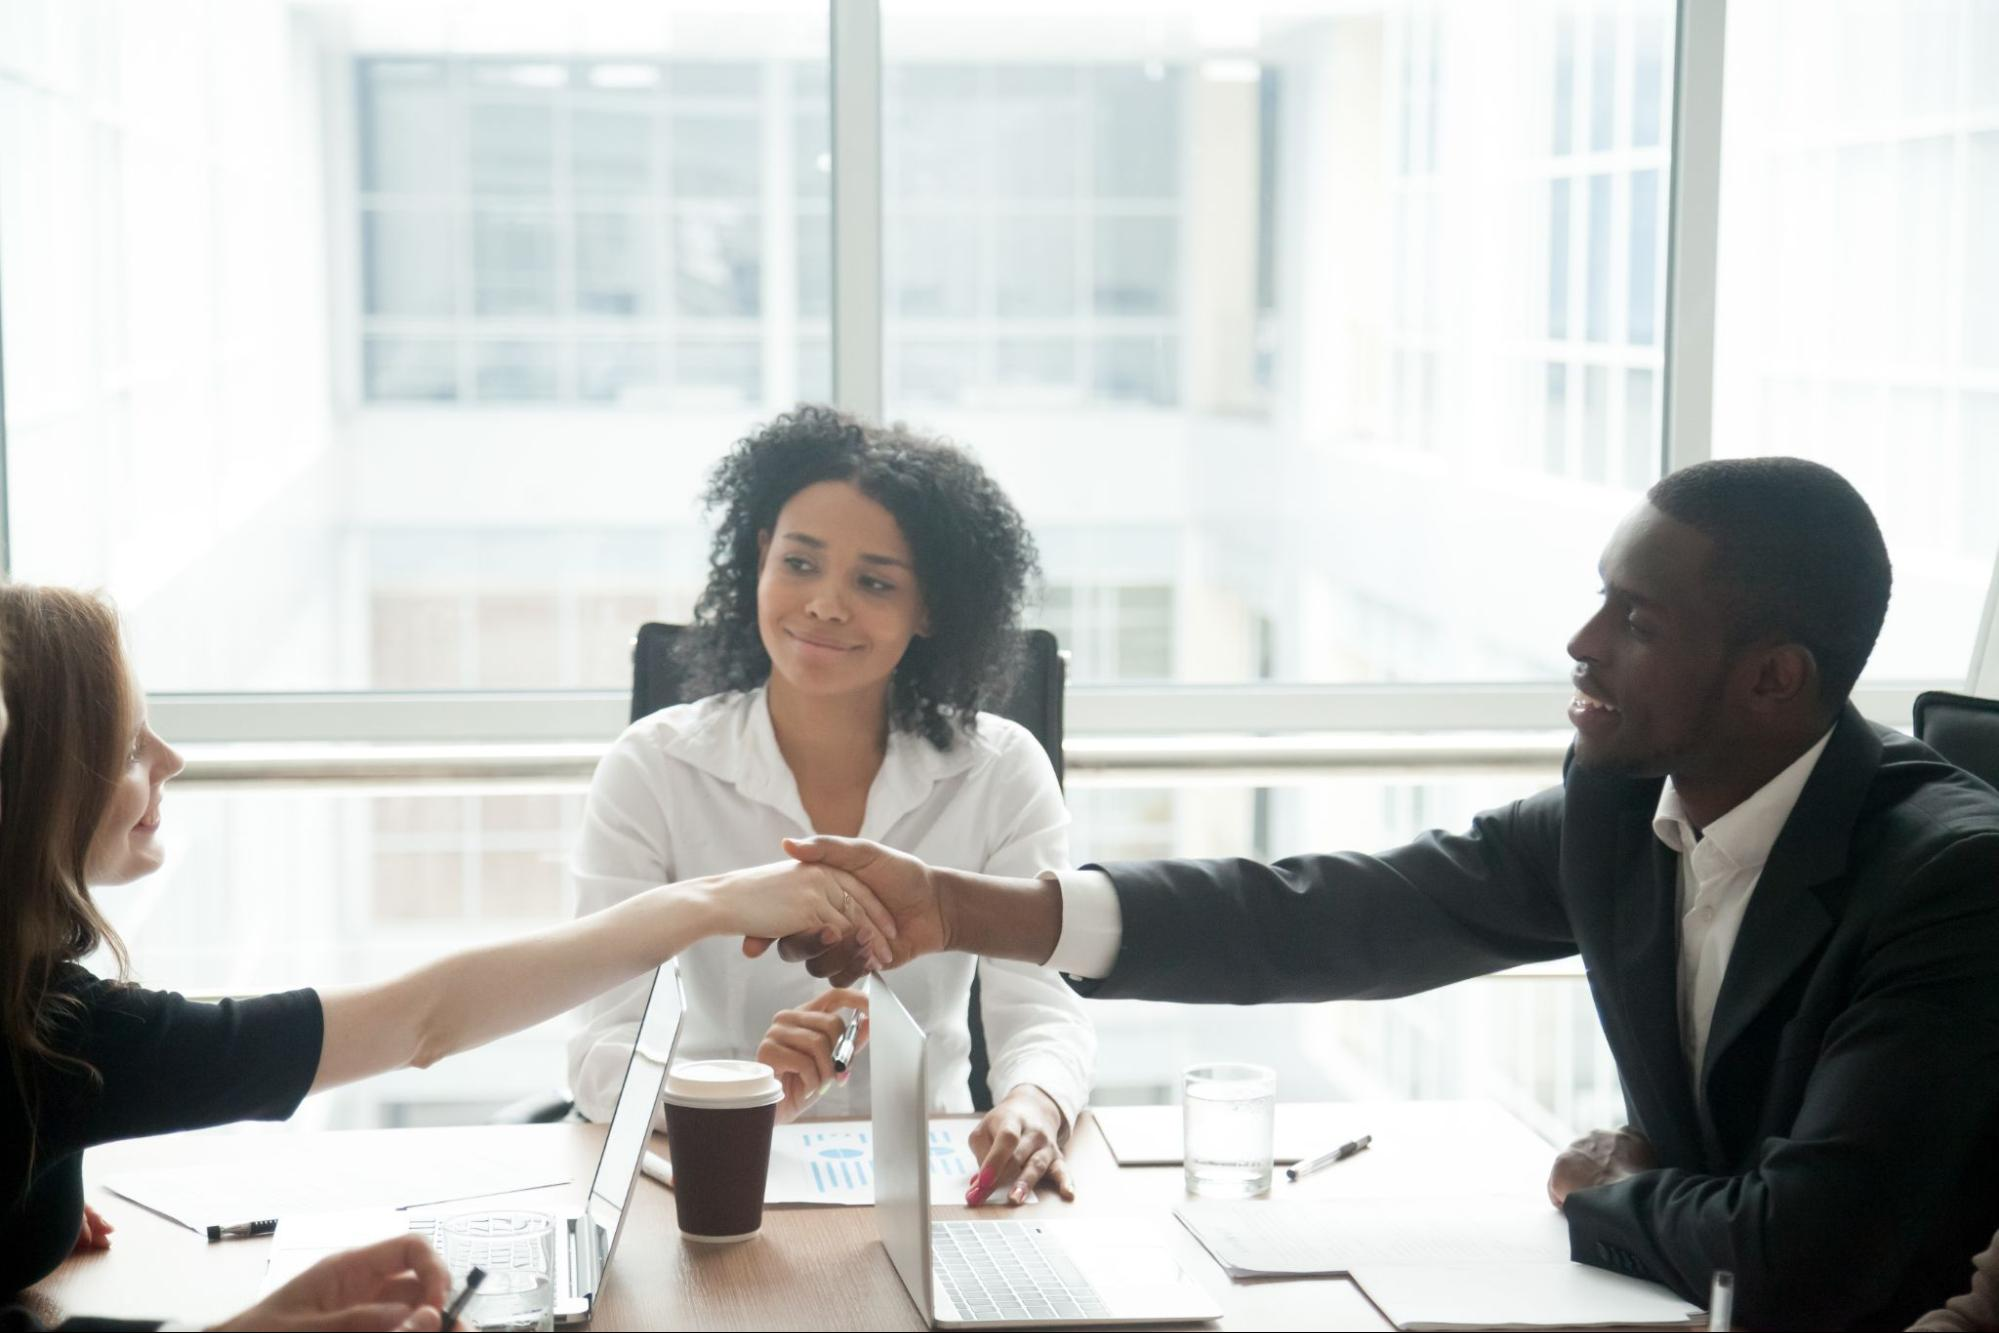 Woman smiling while her two colleagues shake hands